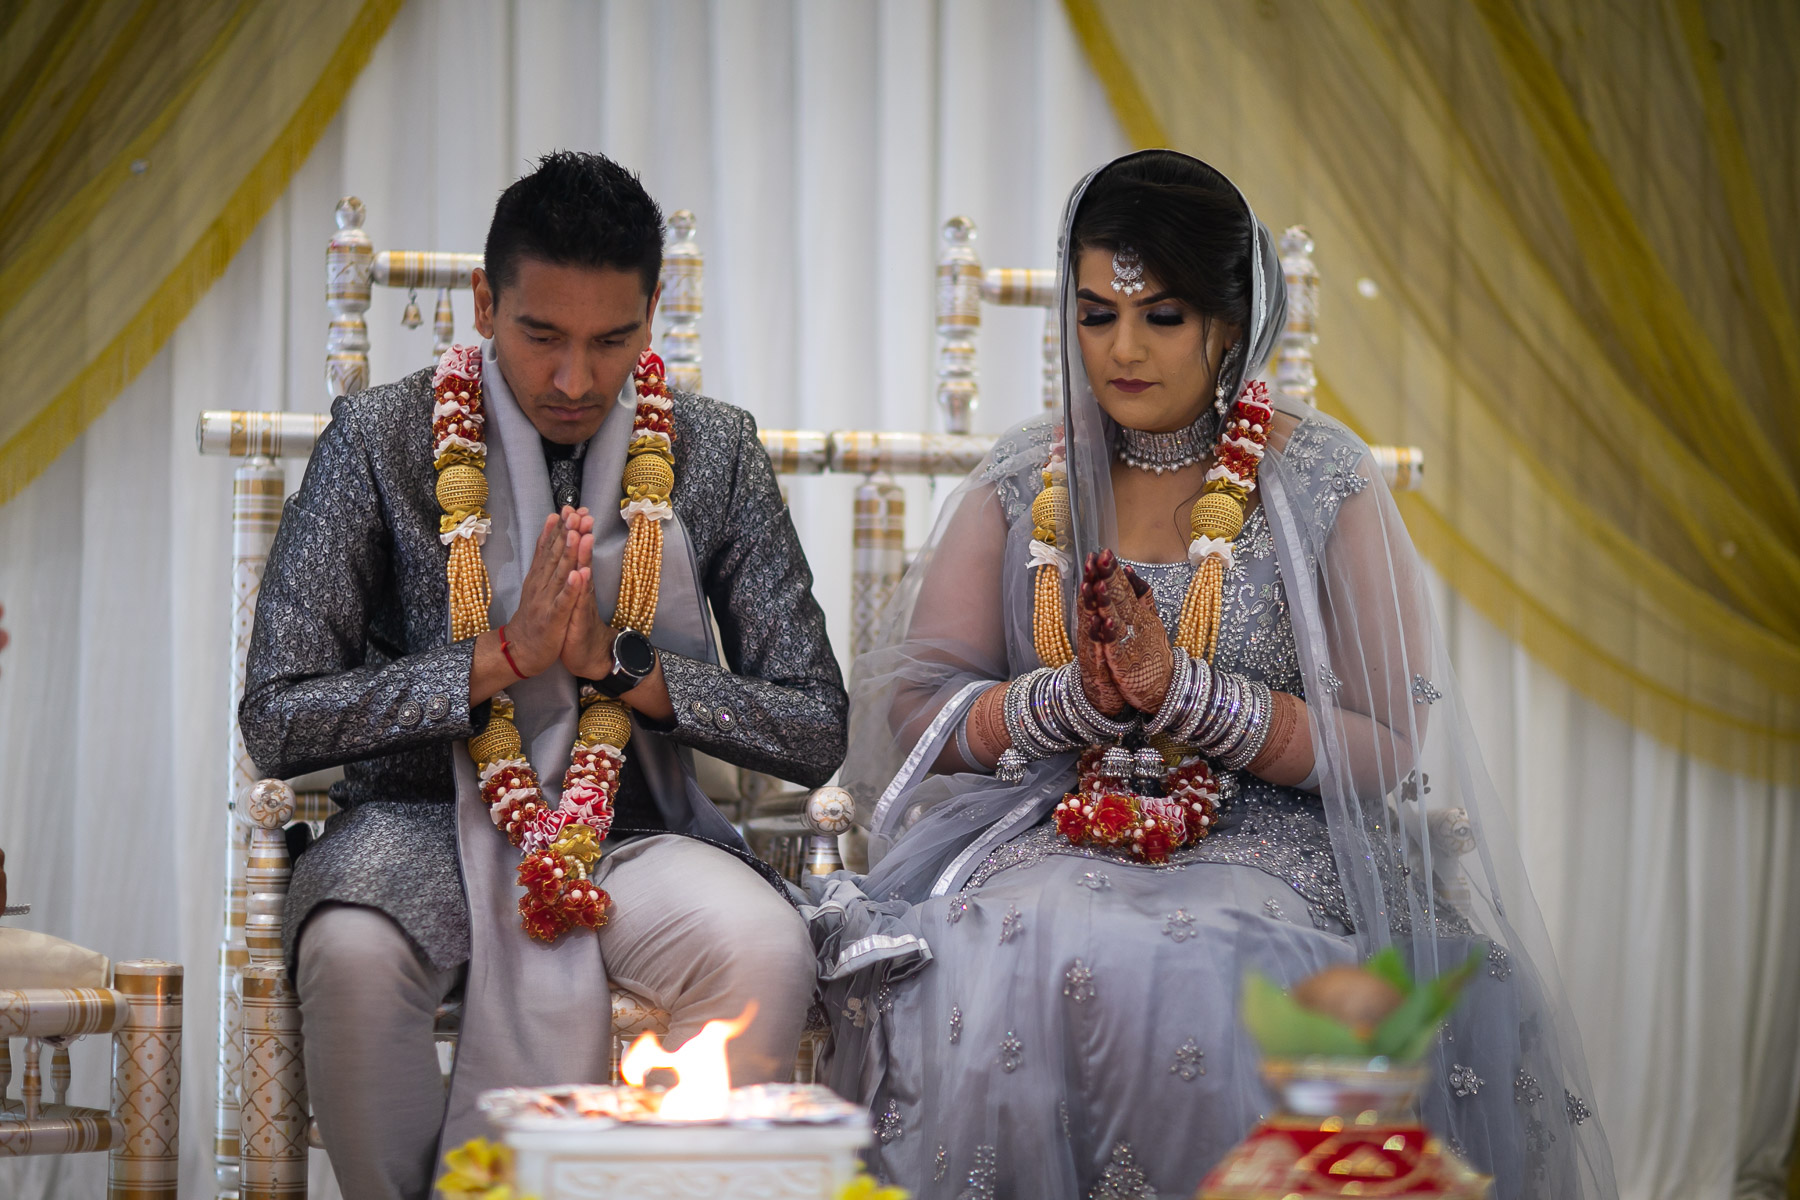 Bride and groom at Asian wedding ceremony